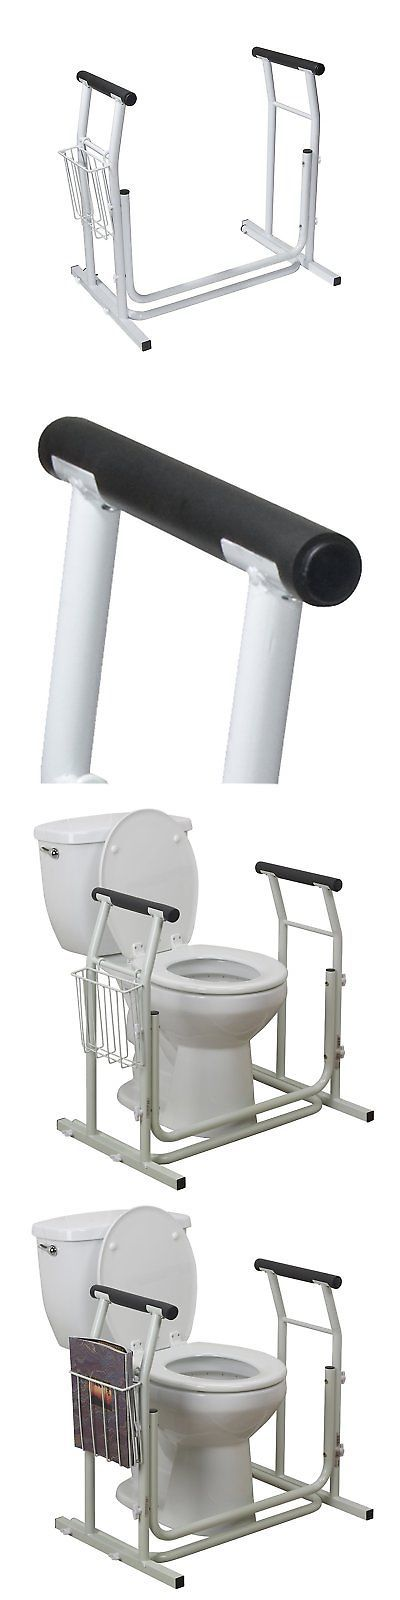 Handles and Rails: Bathroom Safety Equipment Handicap Grab Bars Toilet Rails And Handles Medical-- -> BUY IT NOW ONLY: $43.41 on eBay!